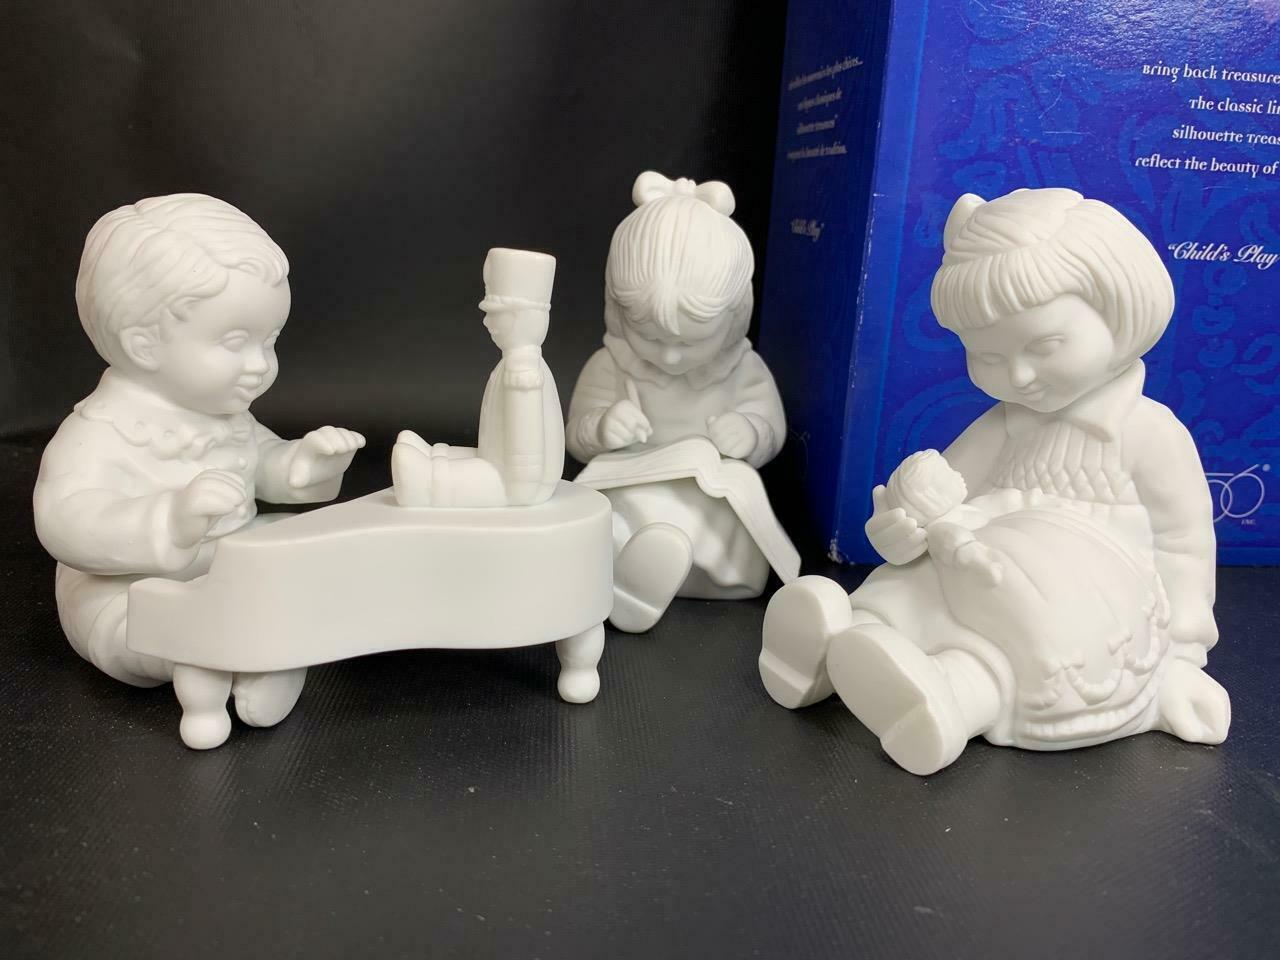 "Primary image for DEPT. 56 Silhouette Treasures 4 pc ""Child's Play"" Porcelain Figurines (56.78610)"